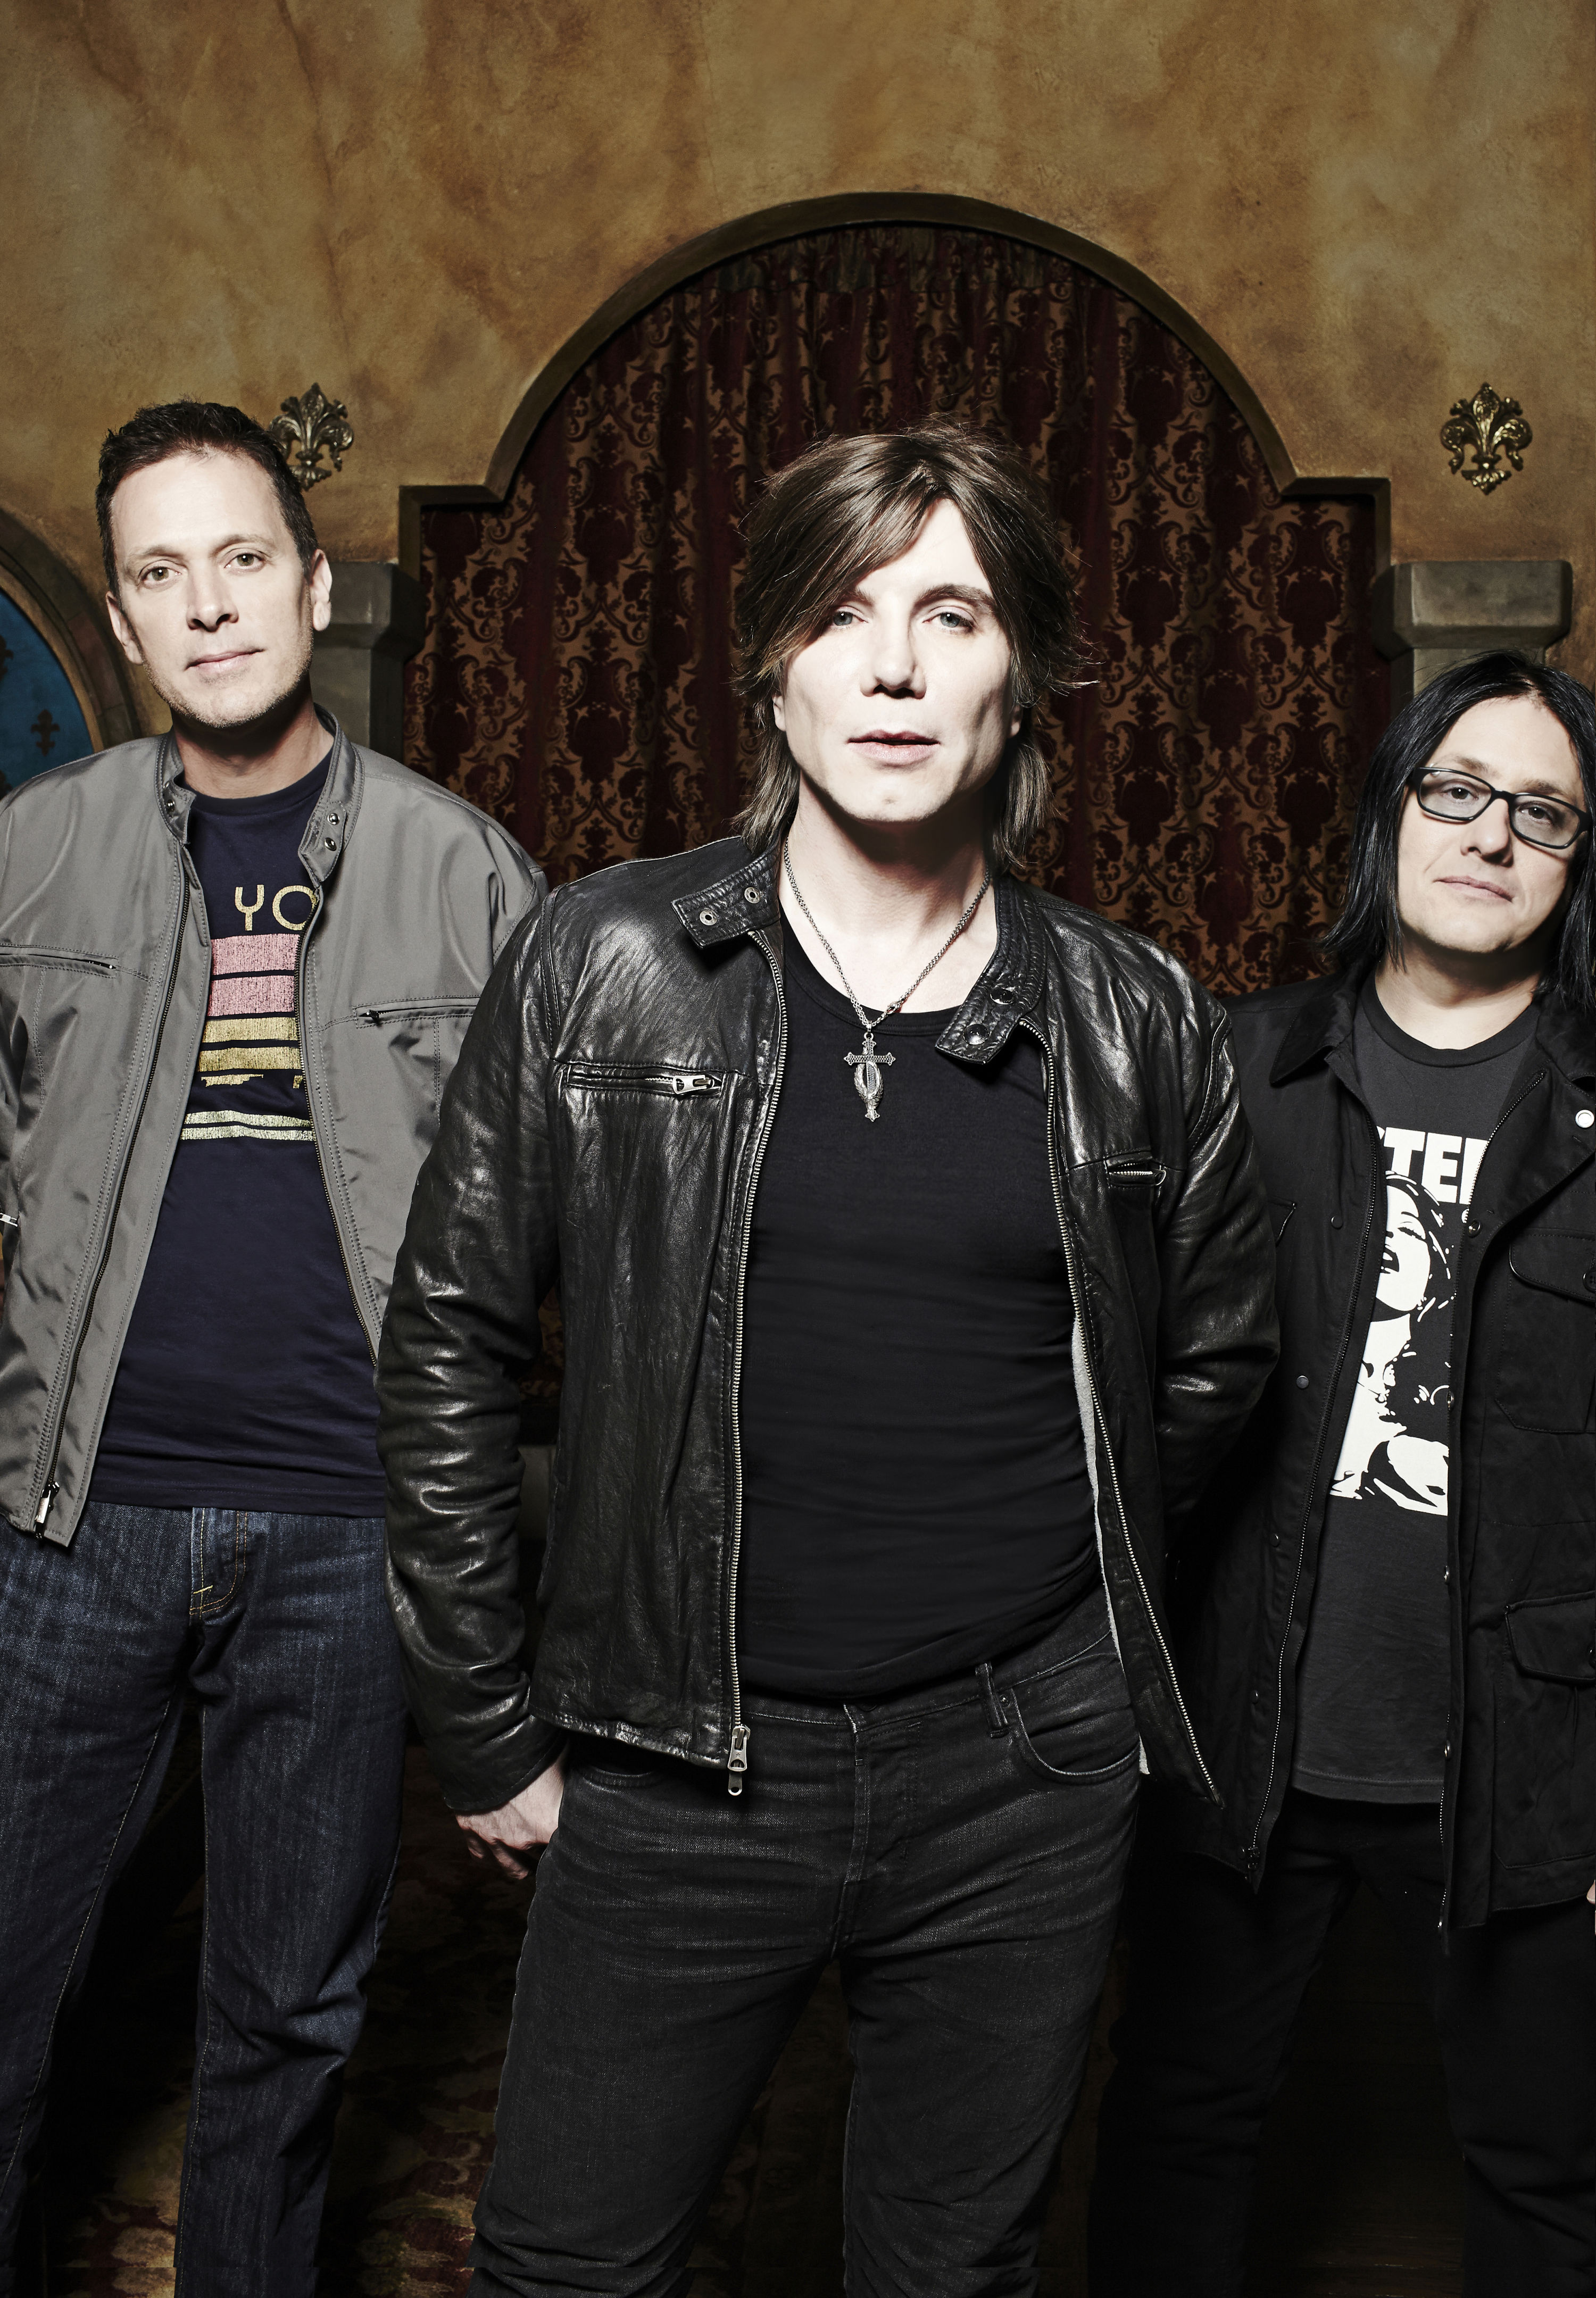 goo goo dolls The goo goo dolls 2017 tour the group is back in action with a new summer tour the goo goo dolls are off to perform at the top venues and cities around the country to add some more heat into the summer months.